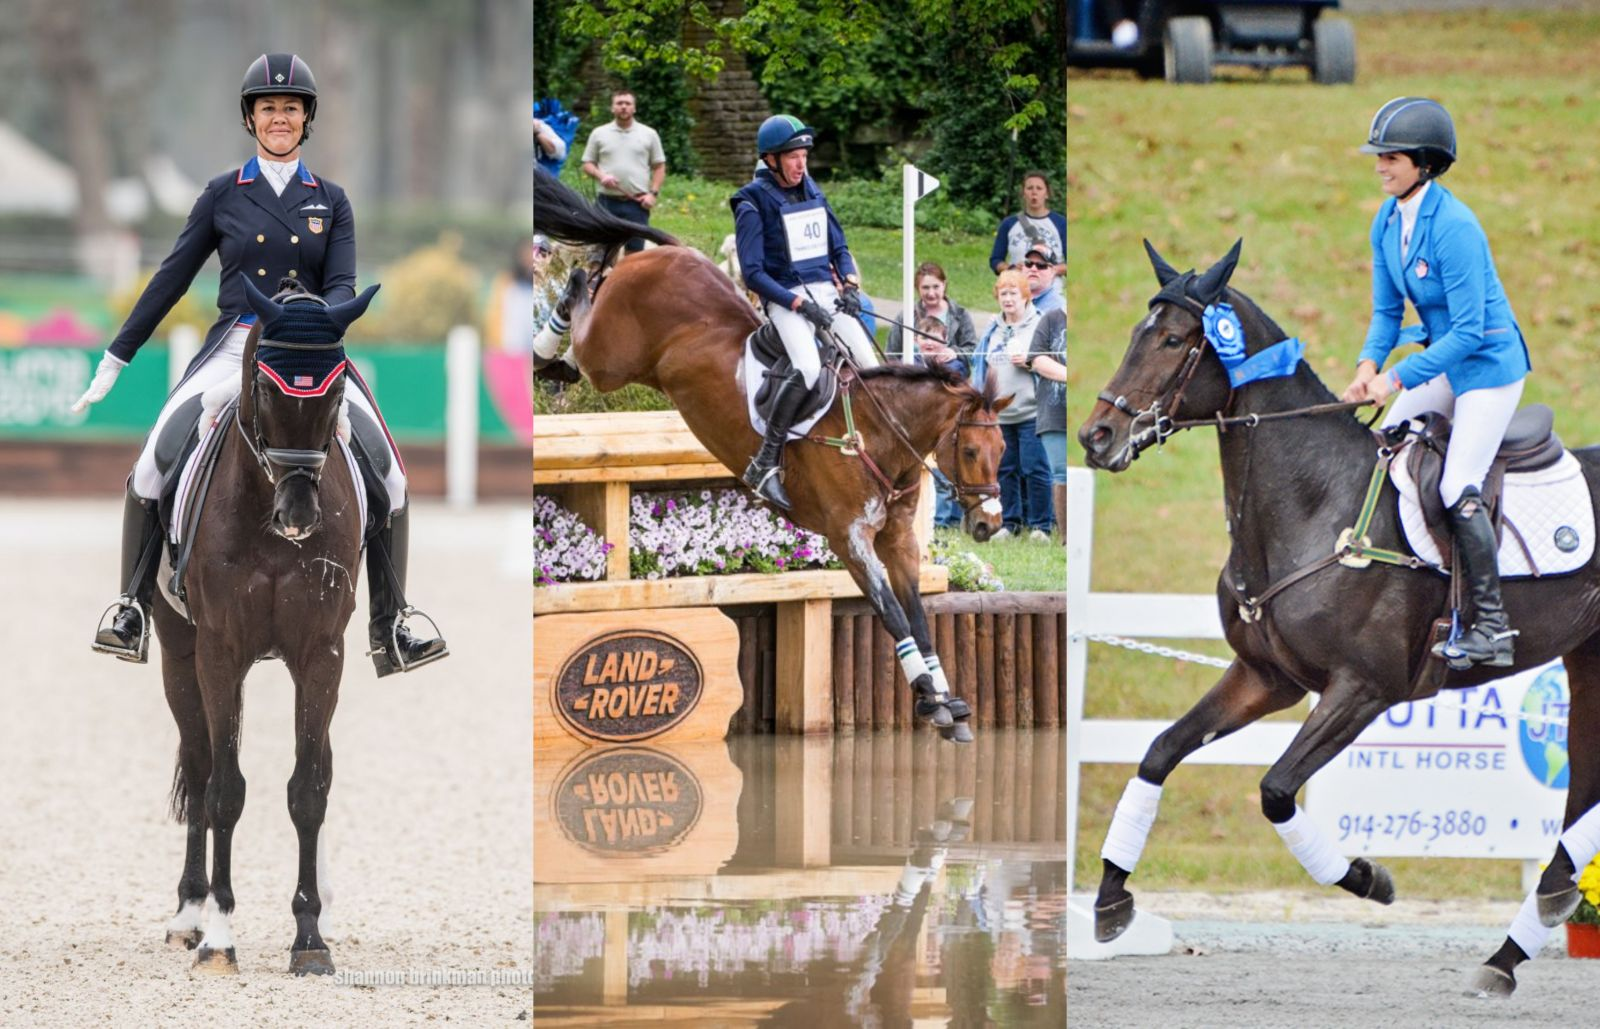 US Equestrian Announces 2019 Land Rover Eventing Grant Recipients - Eventing Nation - Three-Day Eventing News, Results, Videos, and Commentary